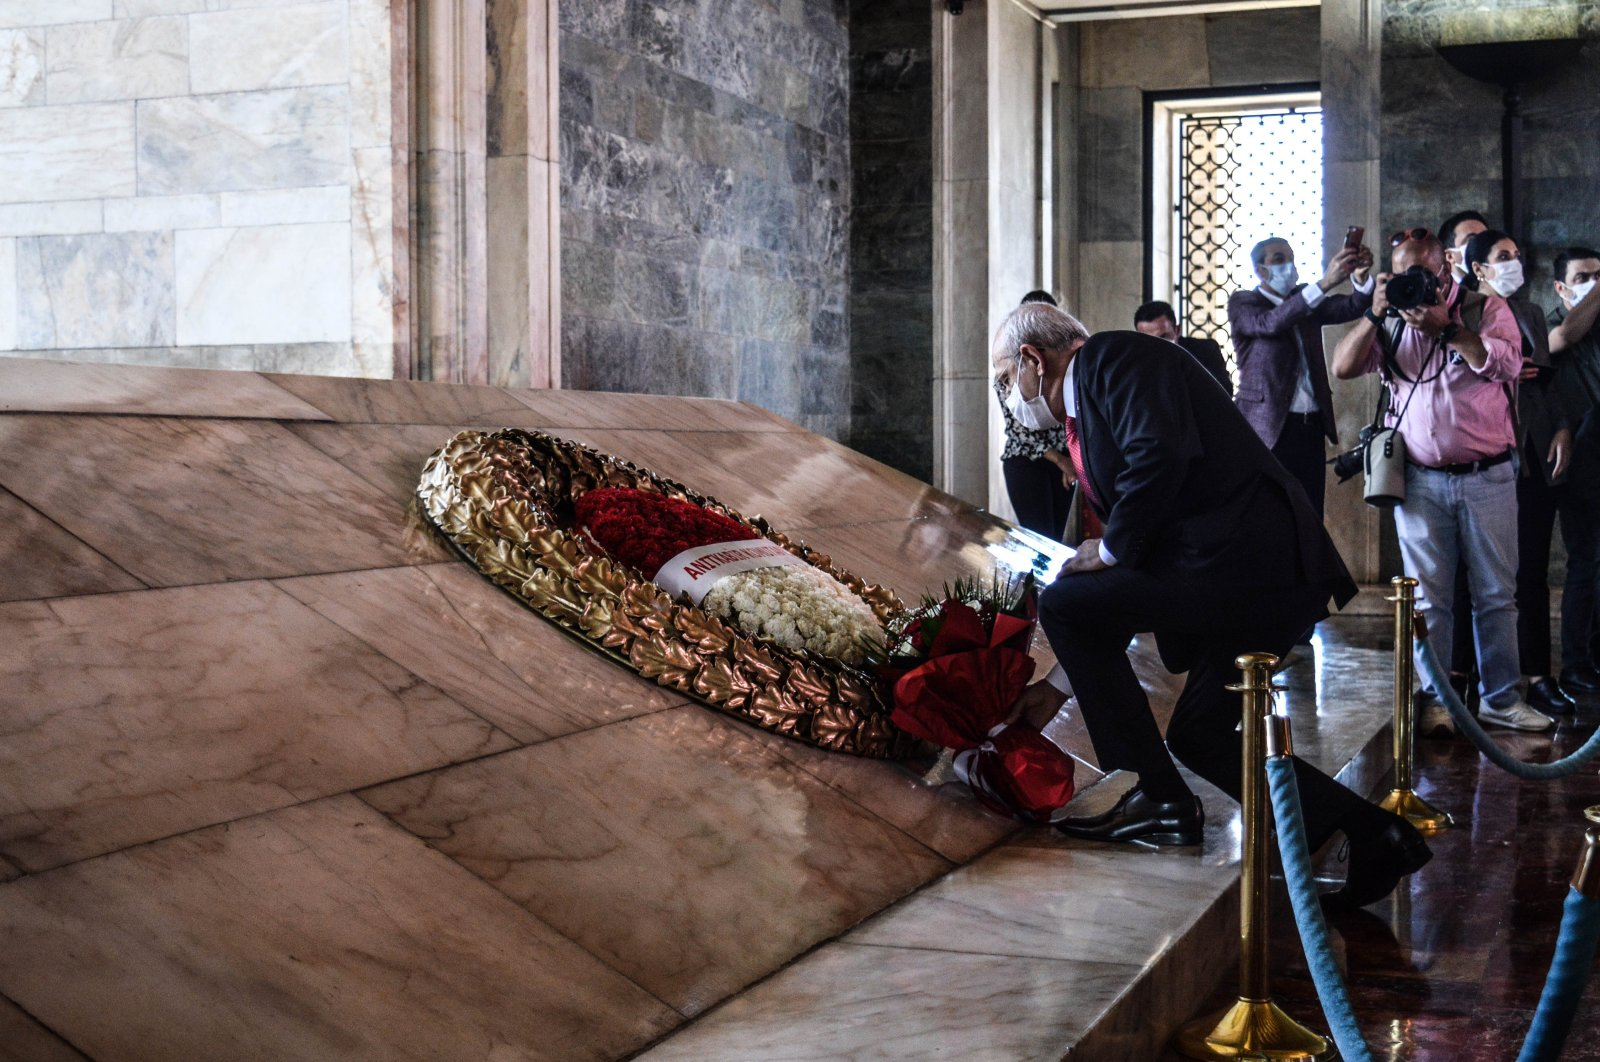 Kemal Kılıçdaroğlu, the chairperson of the main opposition Republican People's Party (CHP), lays a bouquet of flower at Anıtkabir, the mausoleum of modern Turkey's founder Mustafa Kemal Atatürk, on the commemoration of Atatürk, Youth and Sports Day in Ankara, Turkey, May 19, 2021. (Photo by Getty Images)